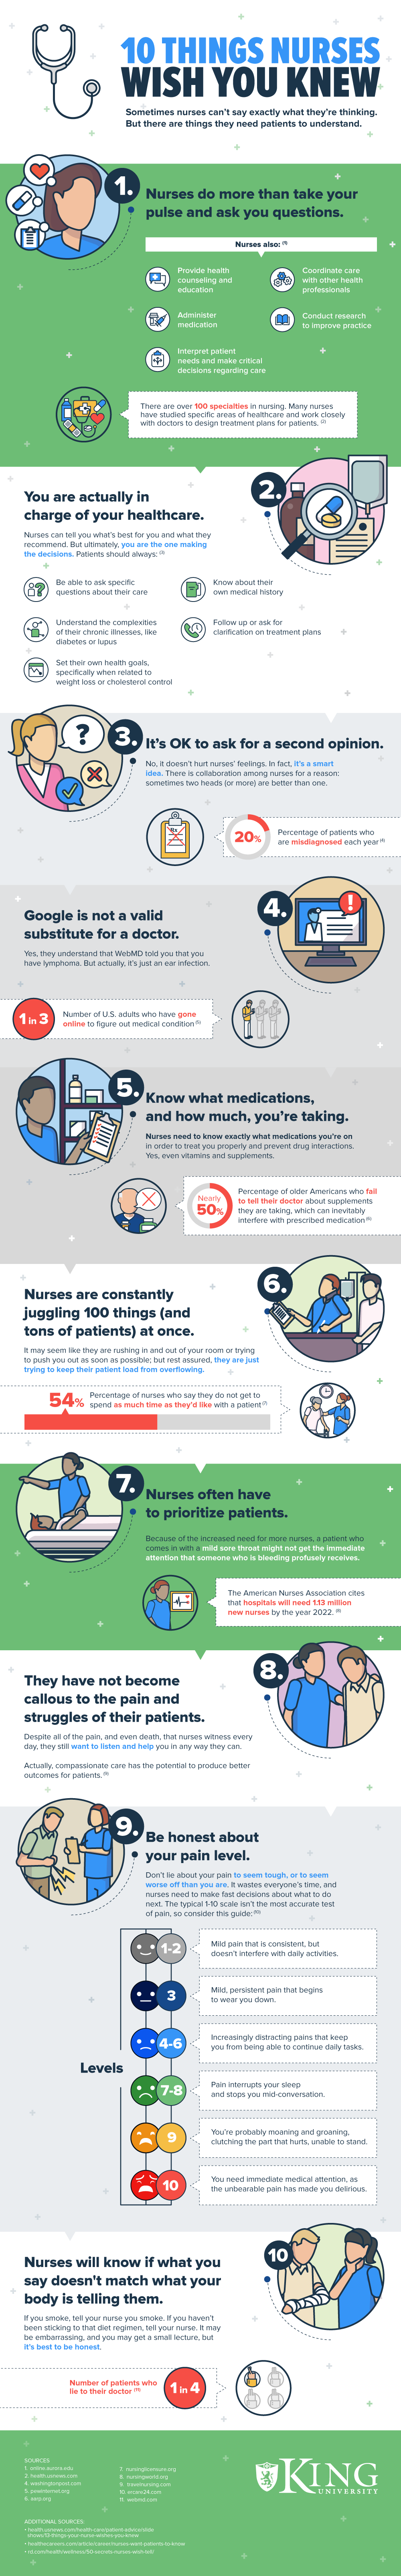 10 Things Nurses Wish You Knew